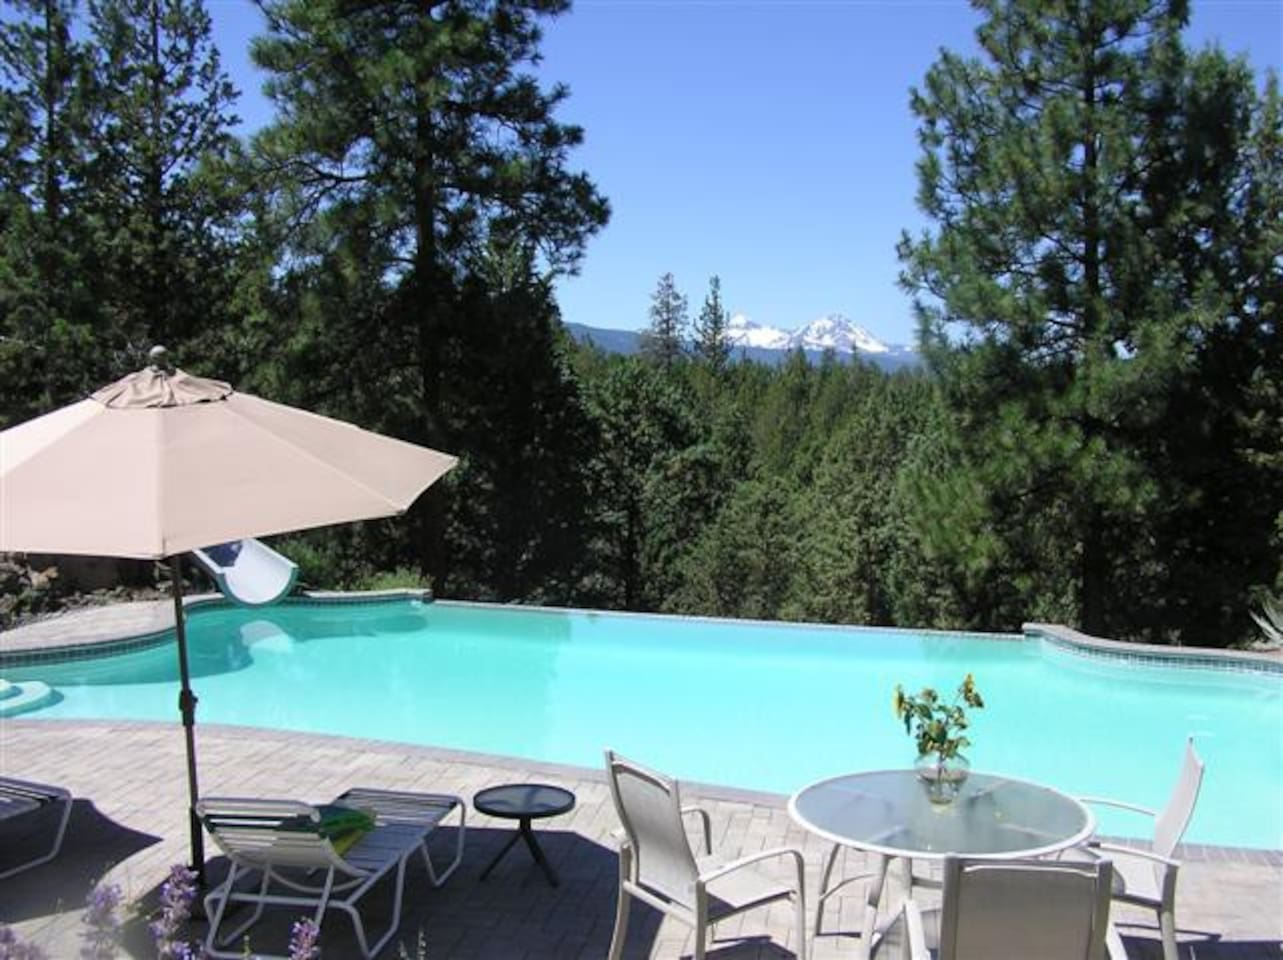 Mountain views from the pool